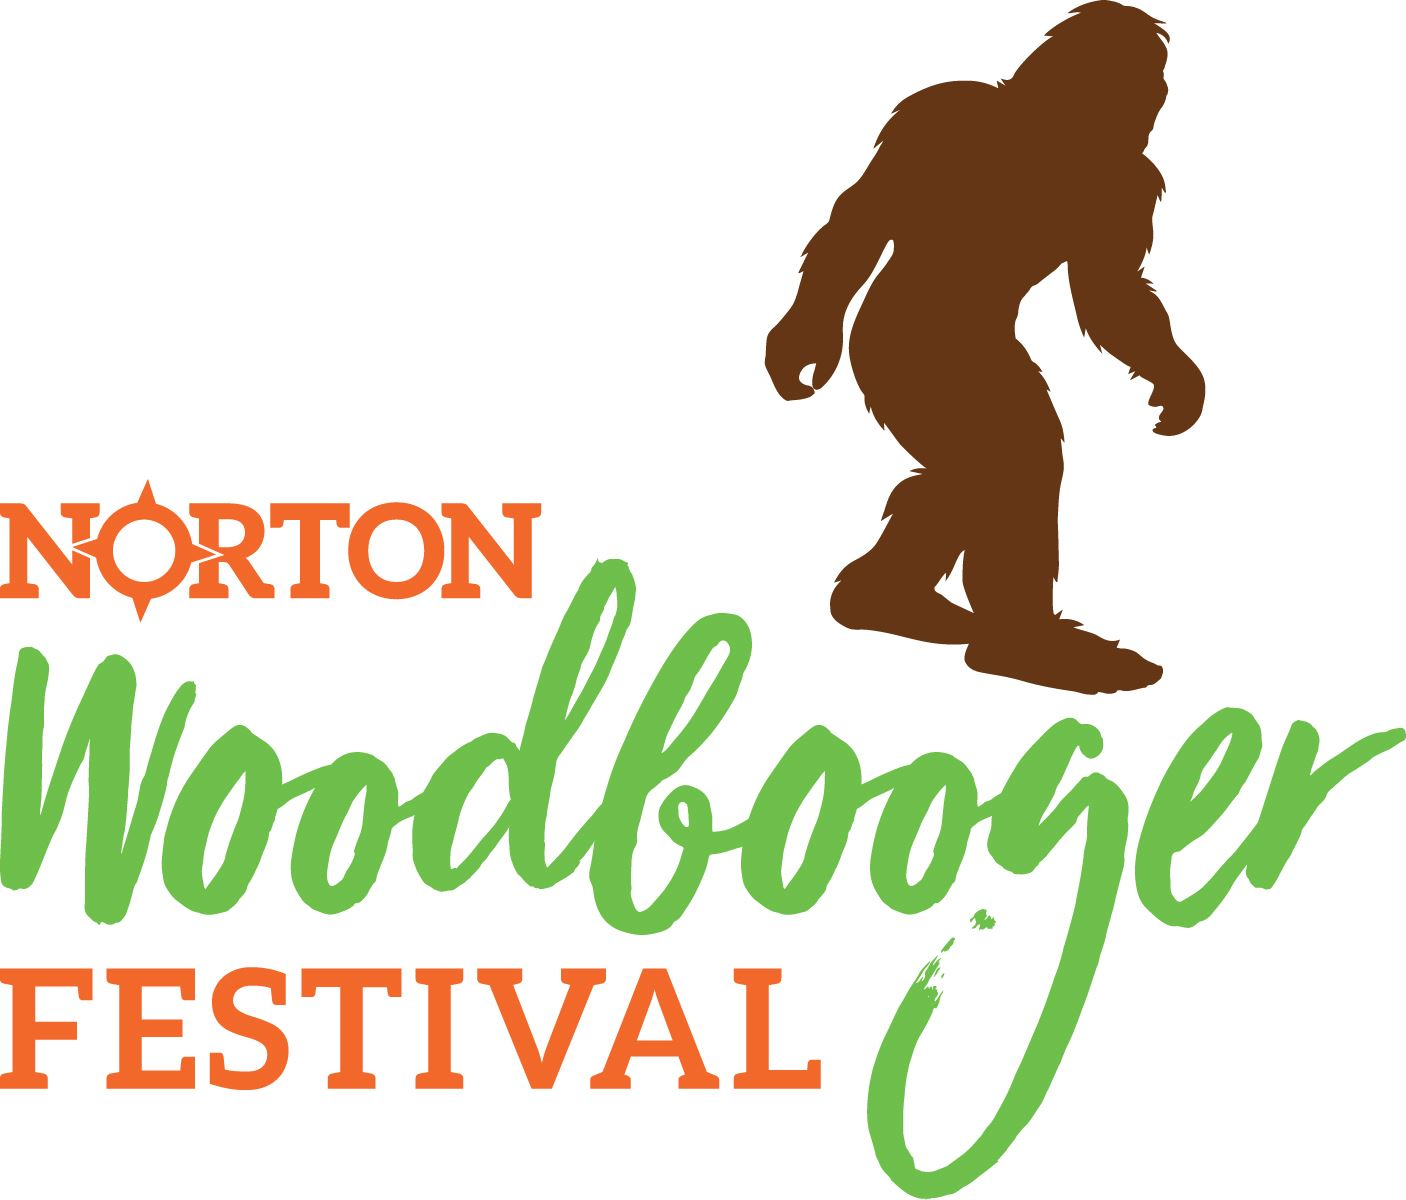 Photo of Woodbooger Festival logo